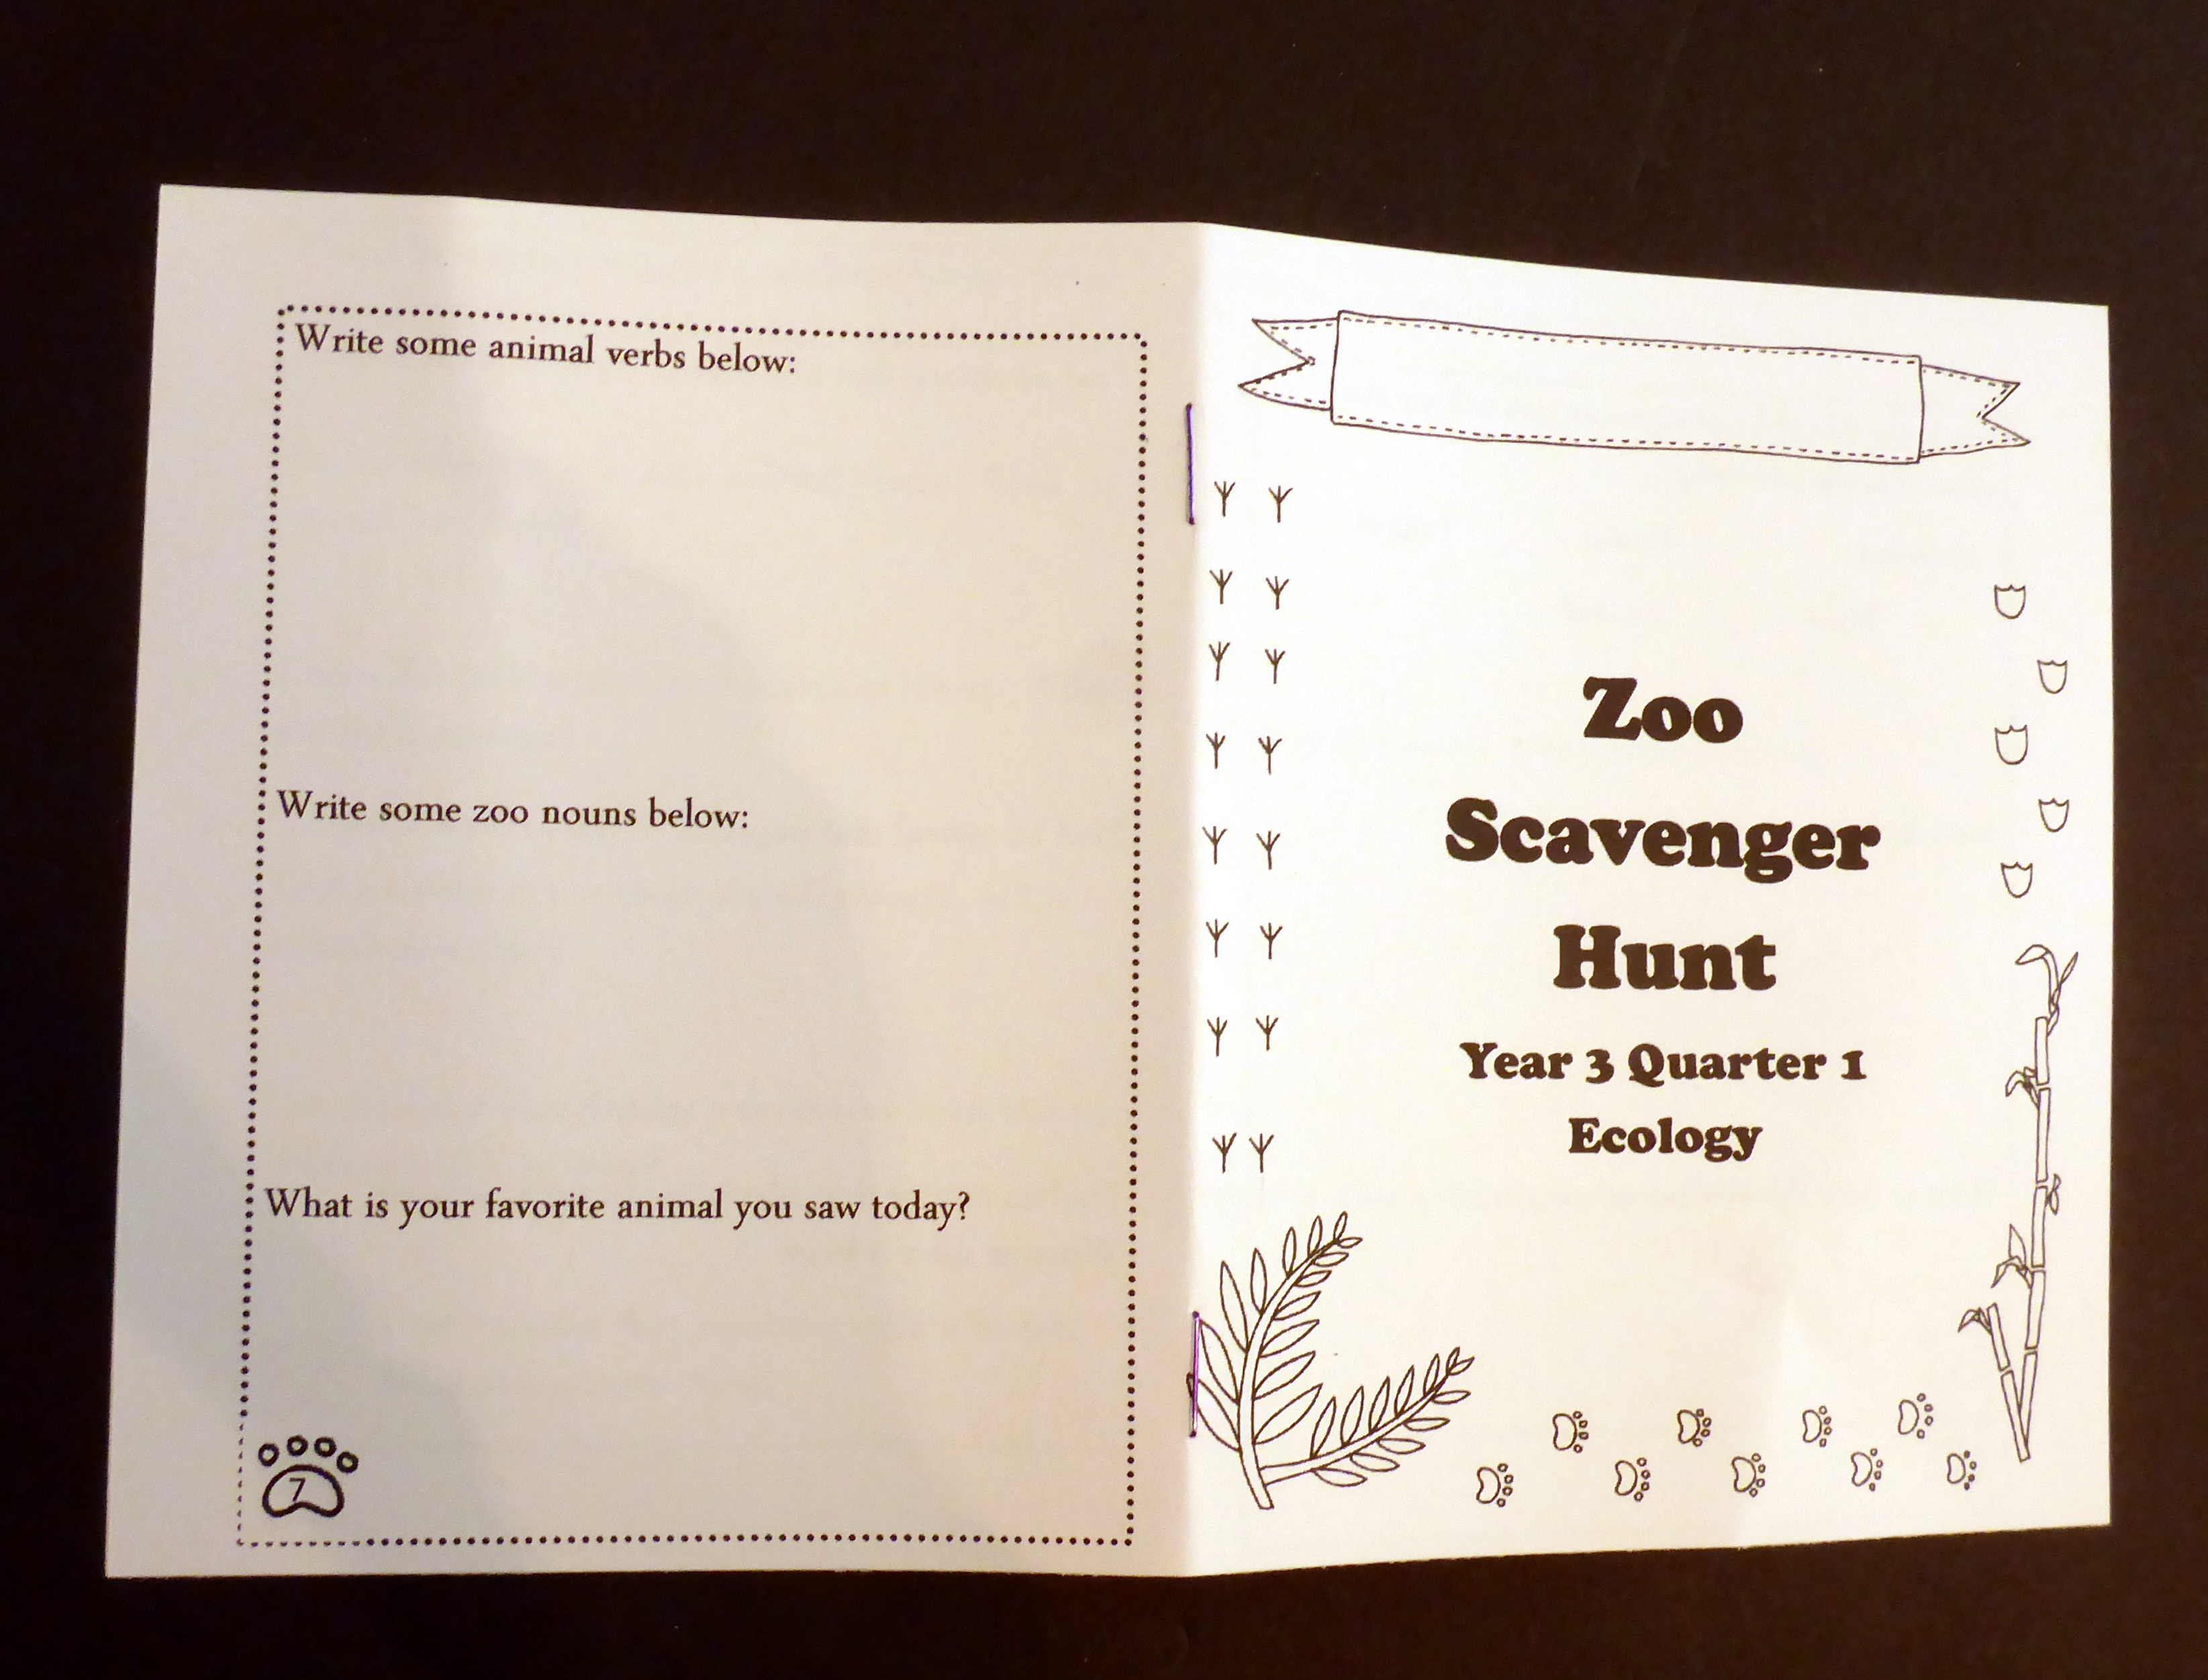 picture regarding Zoo Scavenger Hunt Printable called Zoo Scavenger Hunt Printable (for an Ecology marketplace vacation